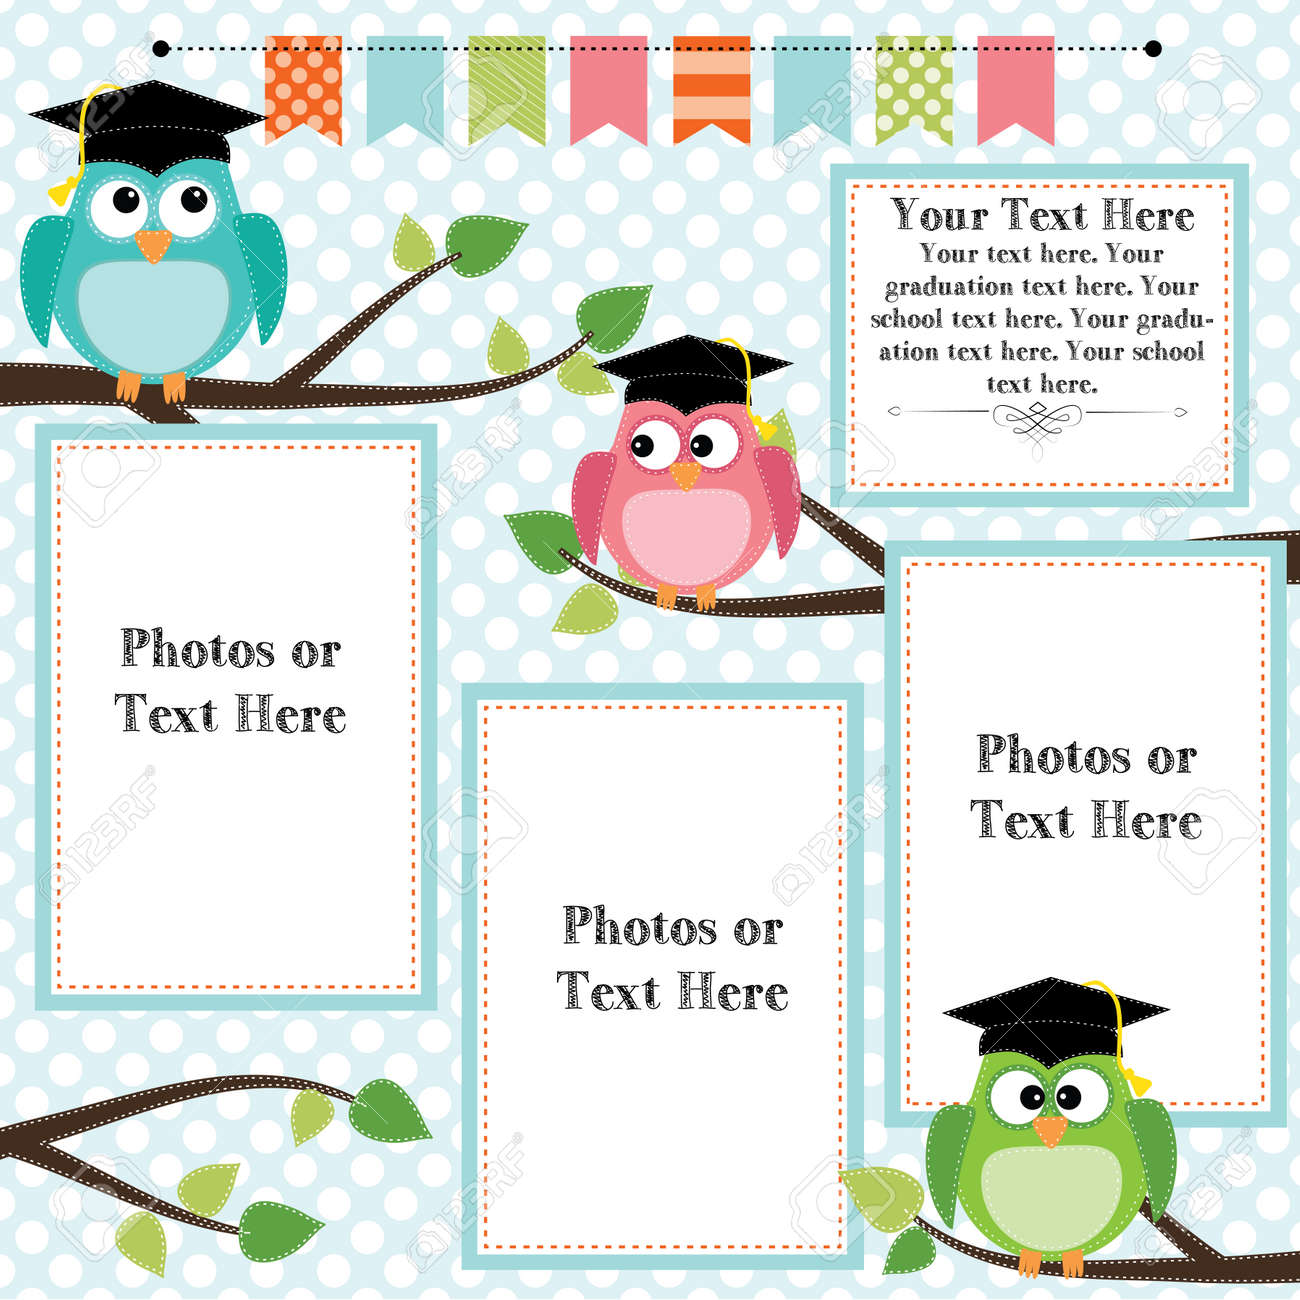 Owls wearing graduation caps with banner or bunting for text, layout for photos, text or scrapbooking, vector format Stock Vector - 27747540